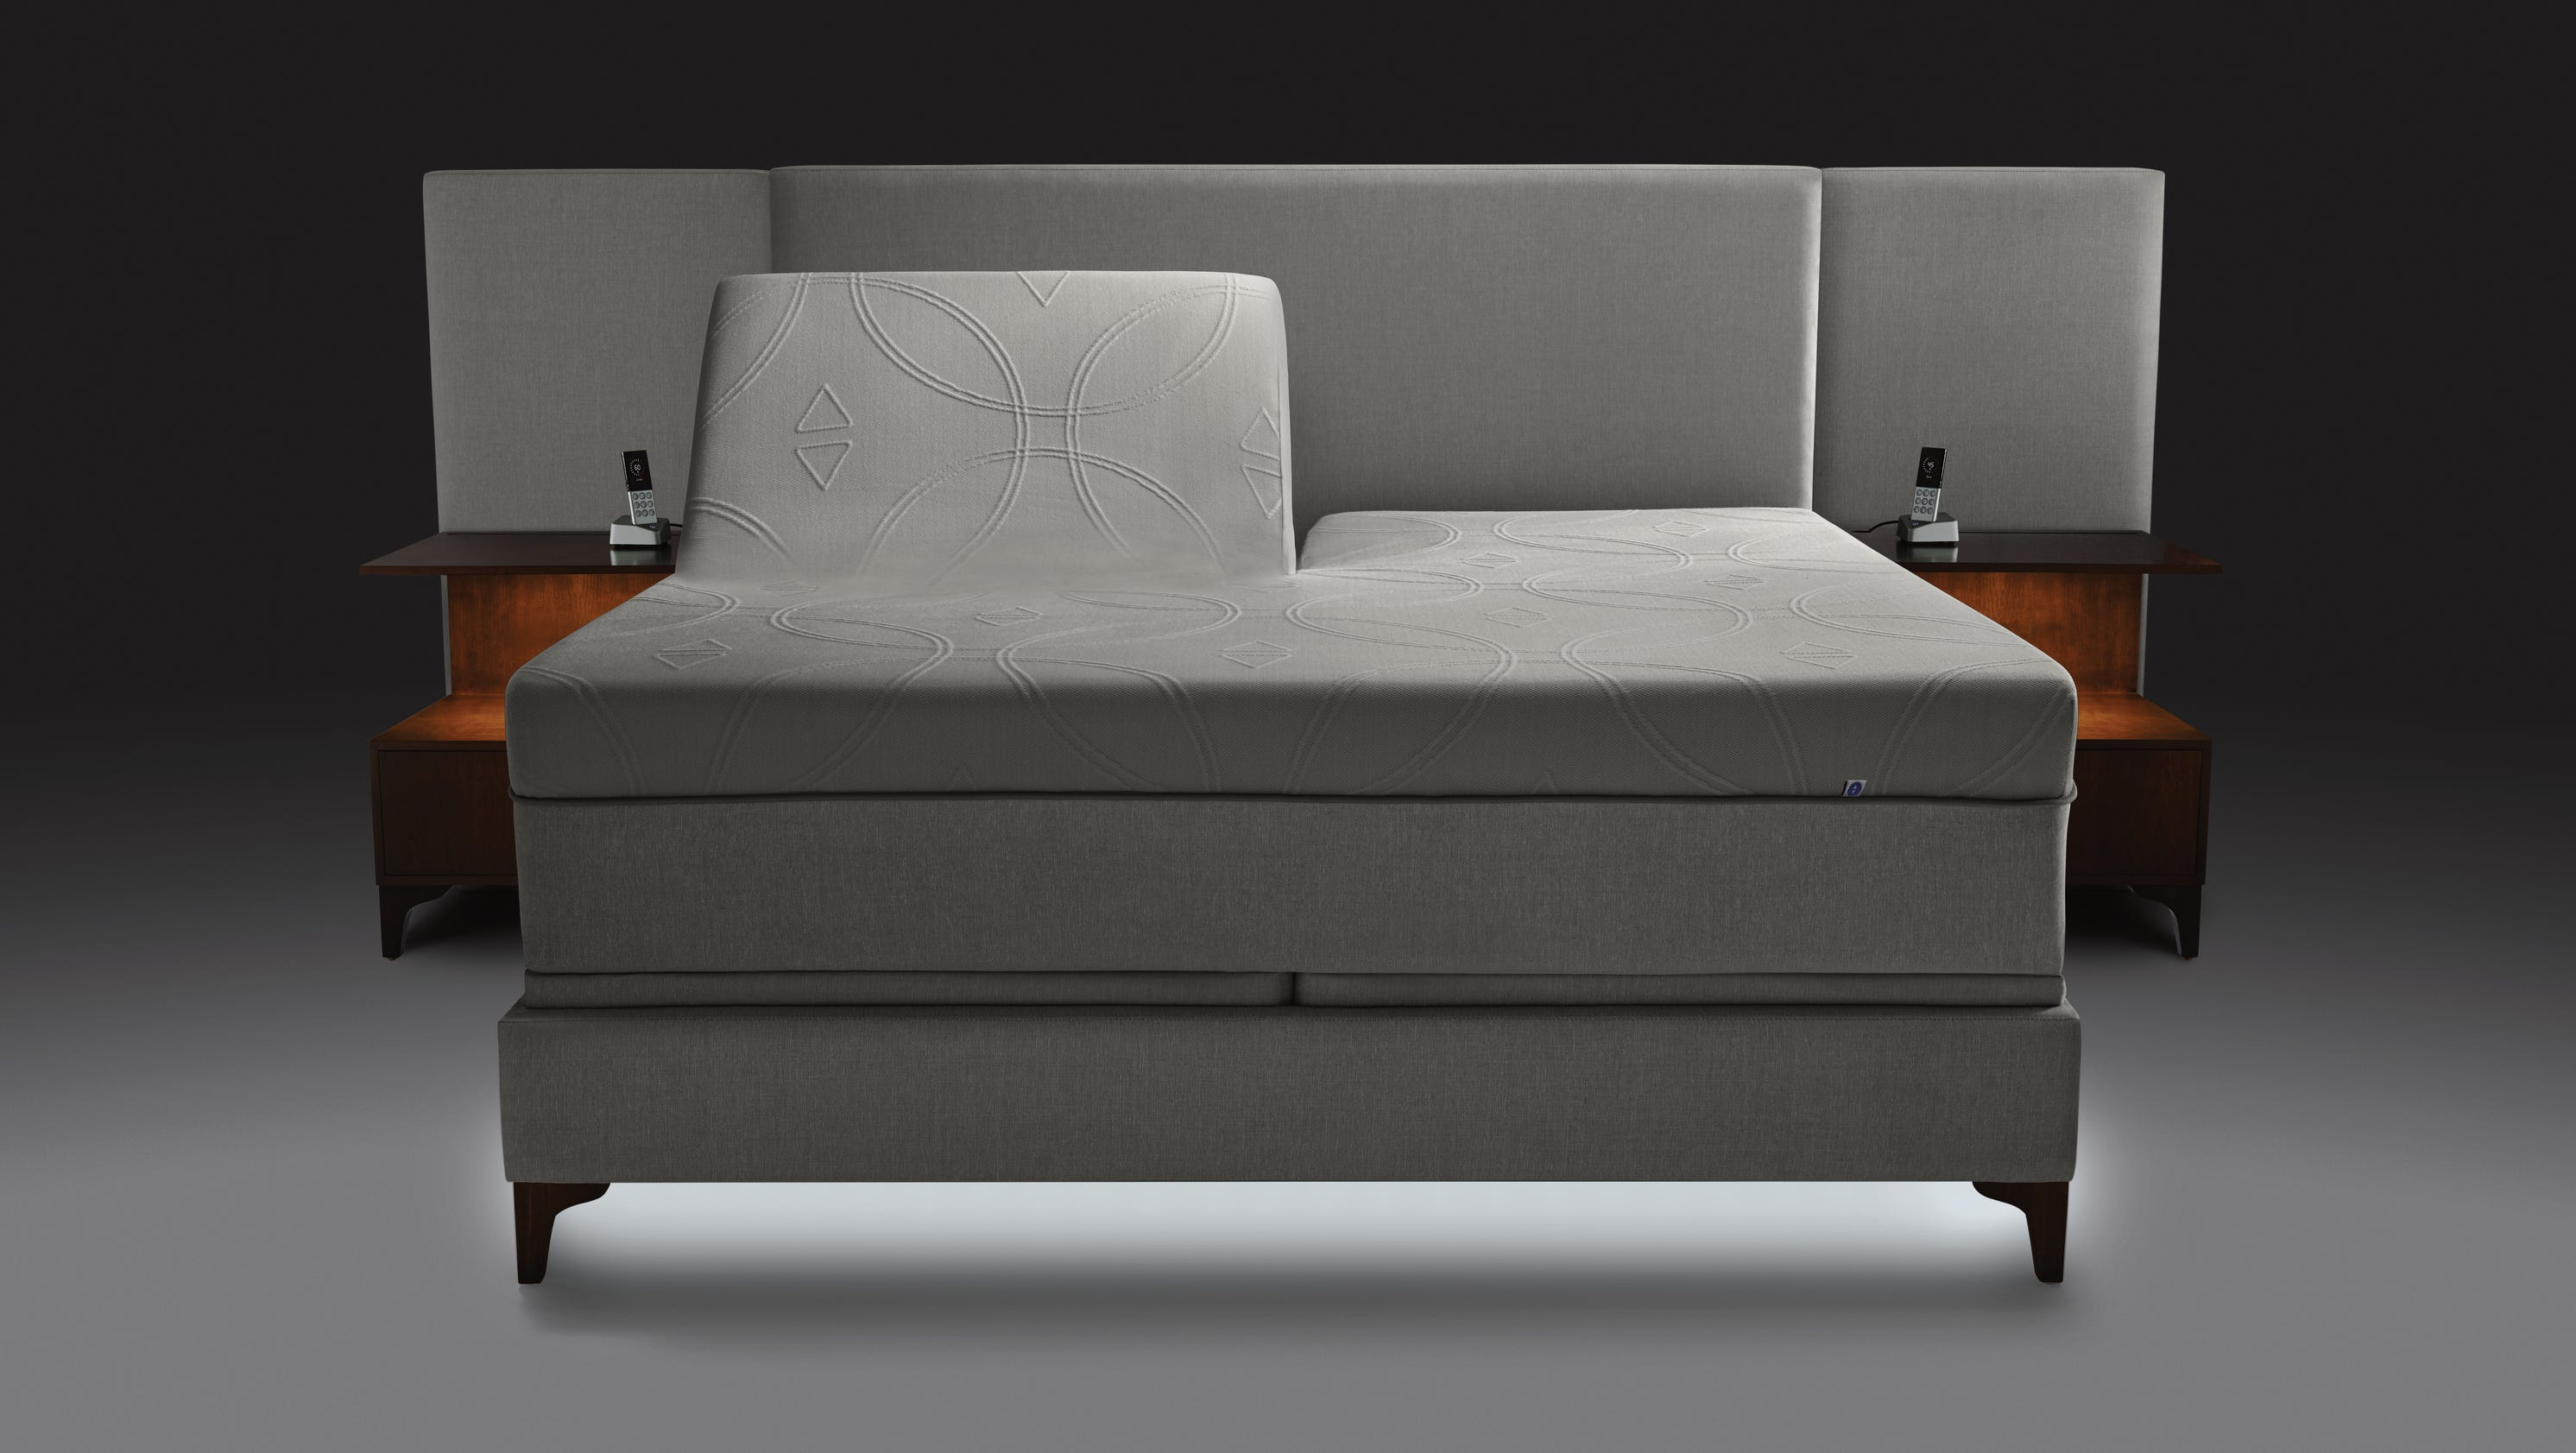 CES 2014: Sleep Number rolls out a smarter bed